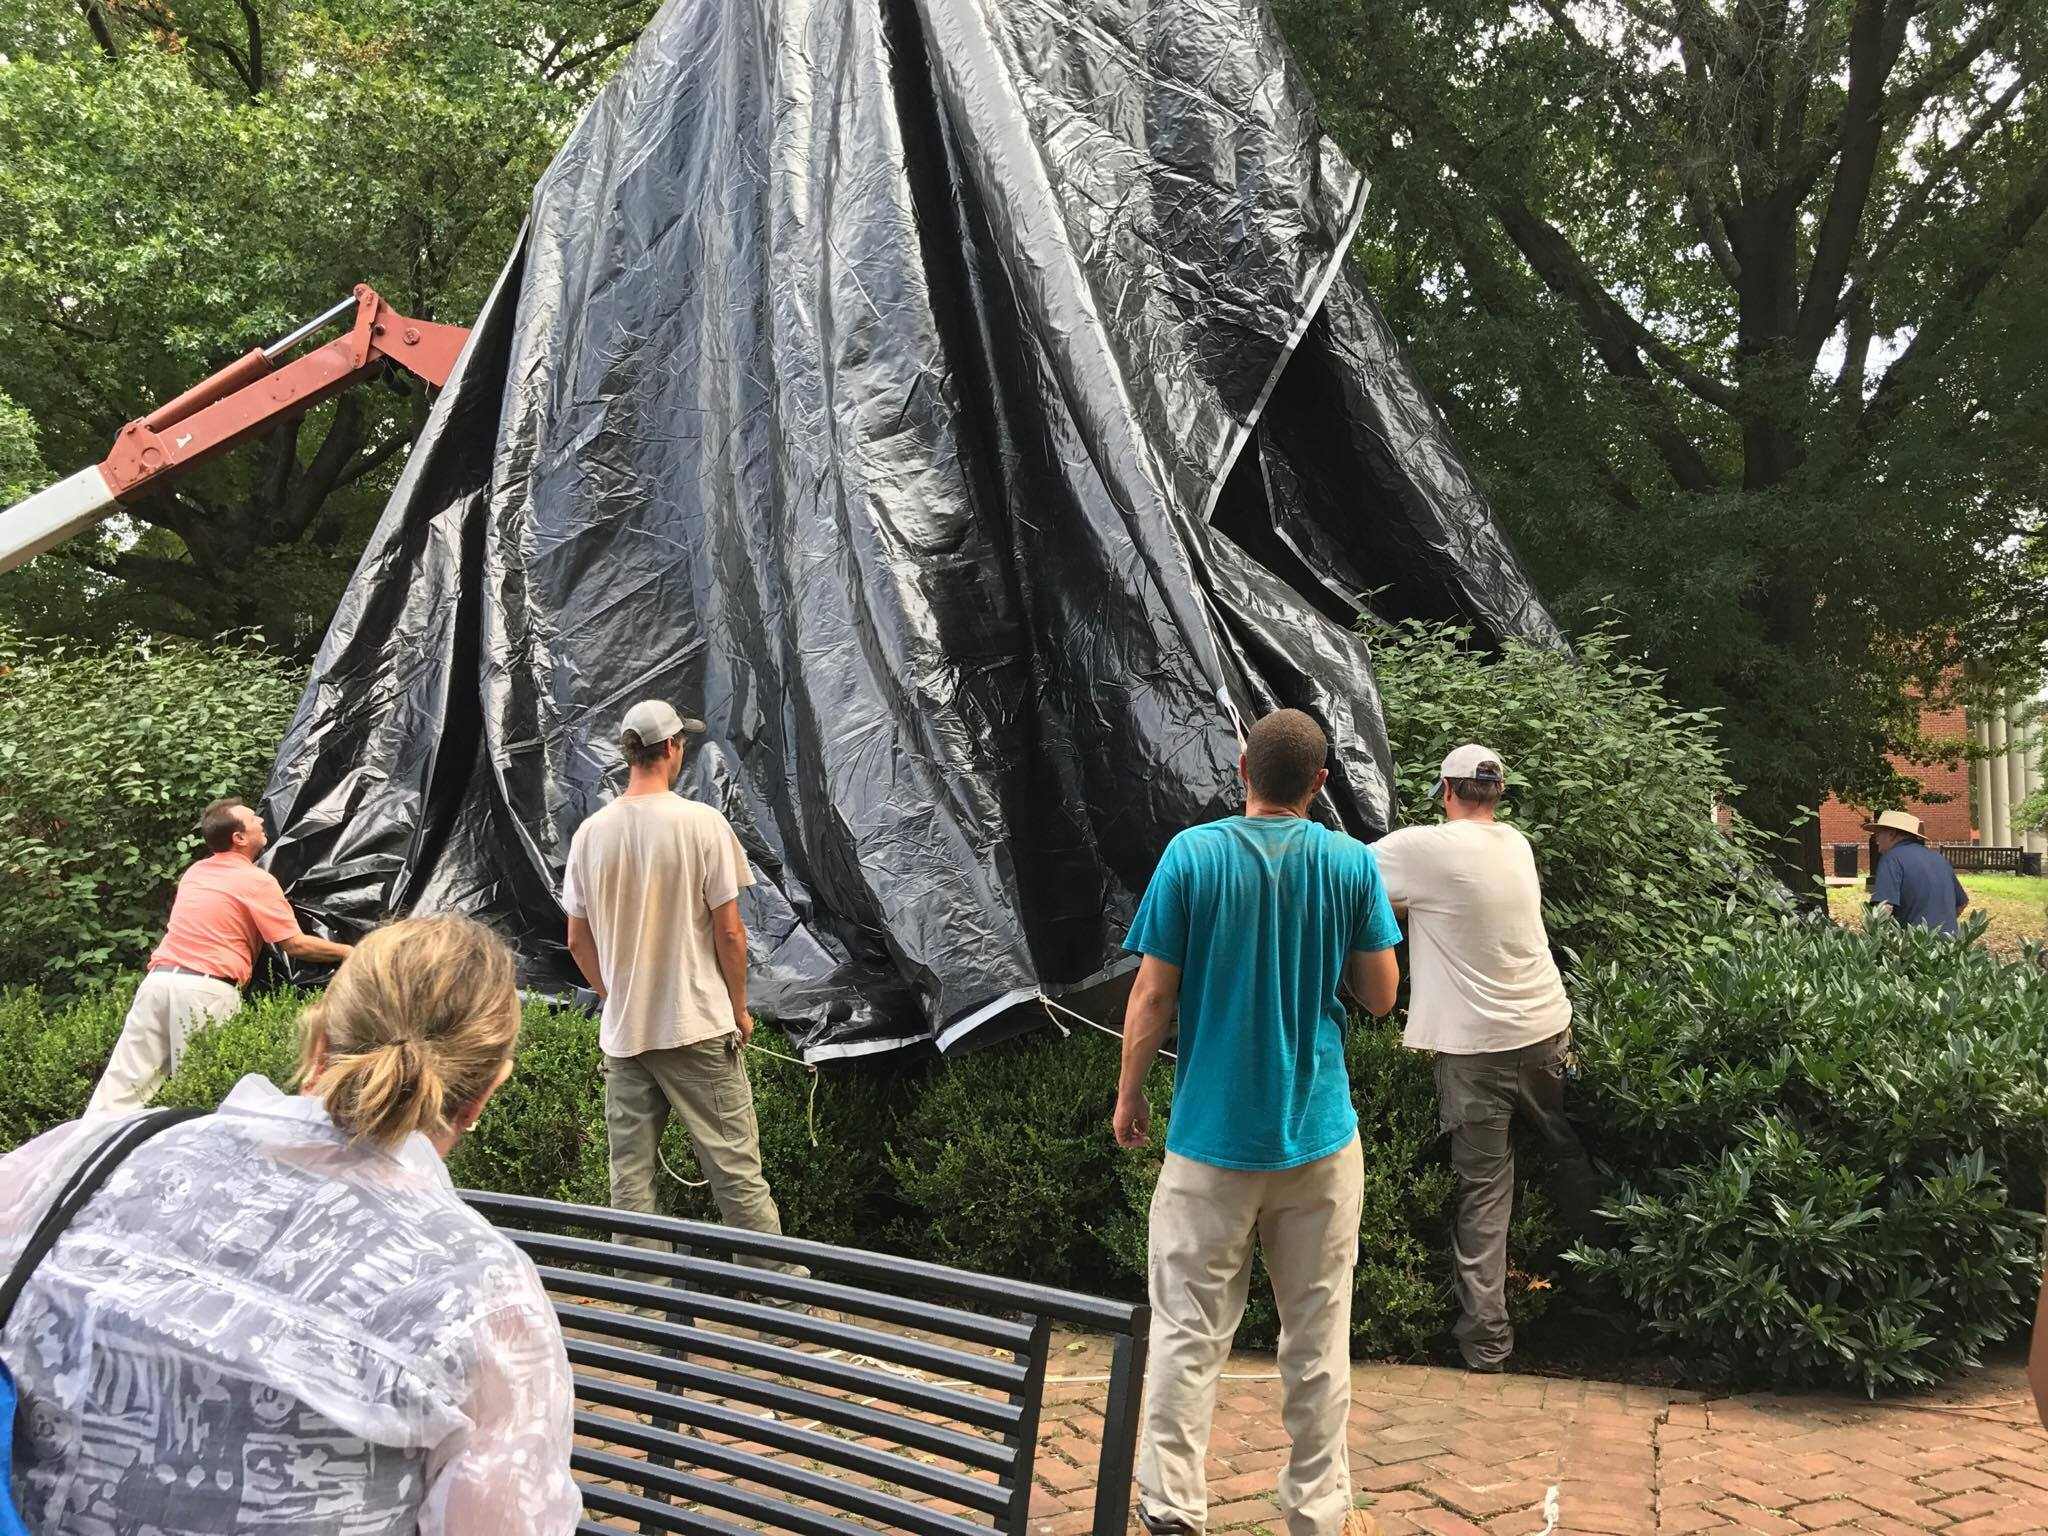 The Stonewall Jackson statue being covered in a black tarp (Photo: WSET)